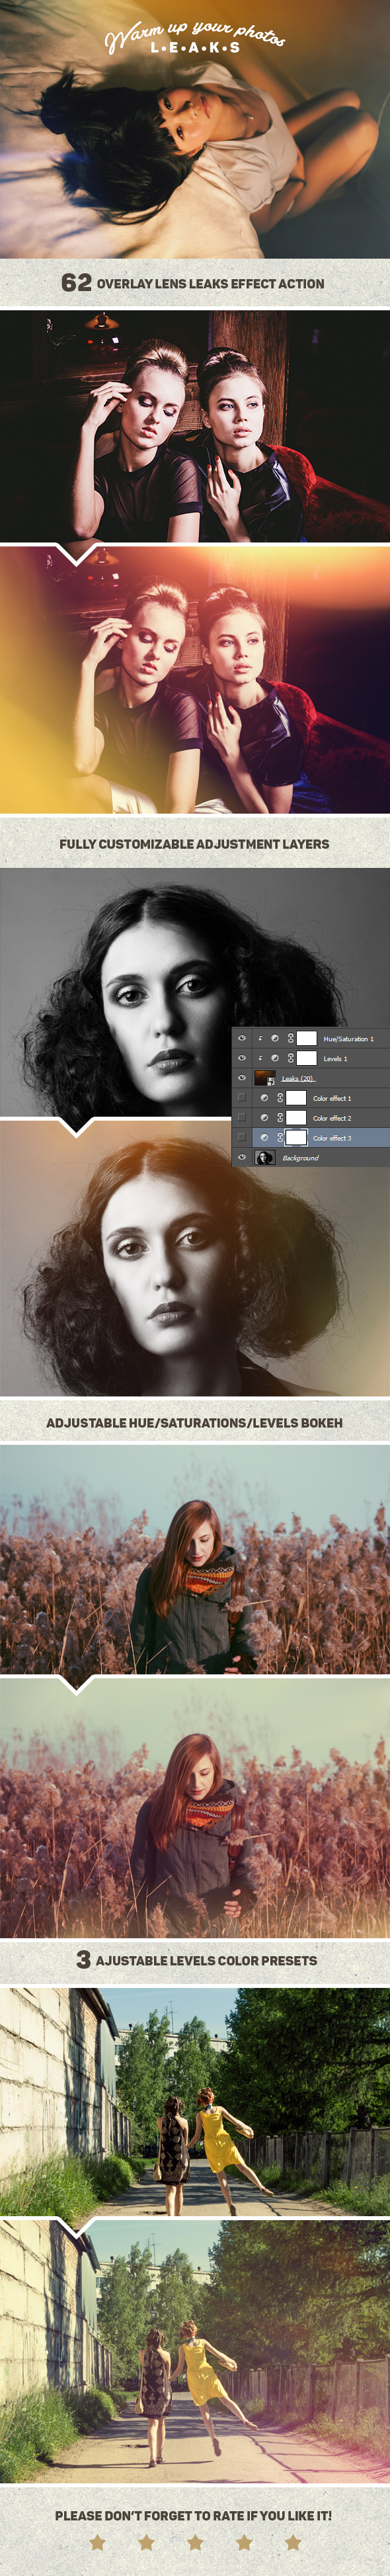 GraphicRiver Lens Leaks Photo Warmer Actions 11653976